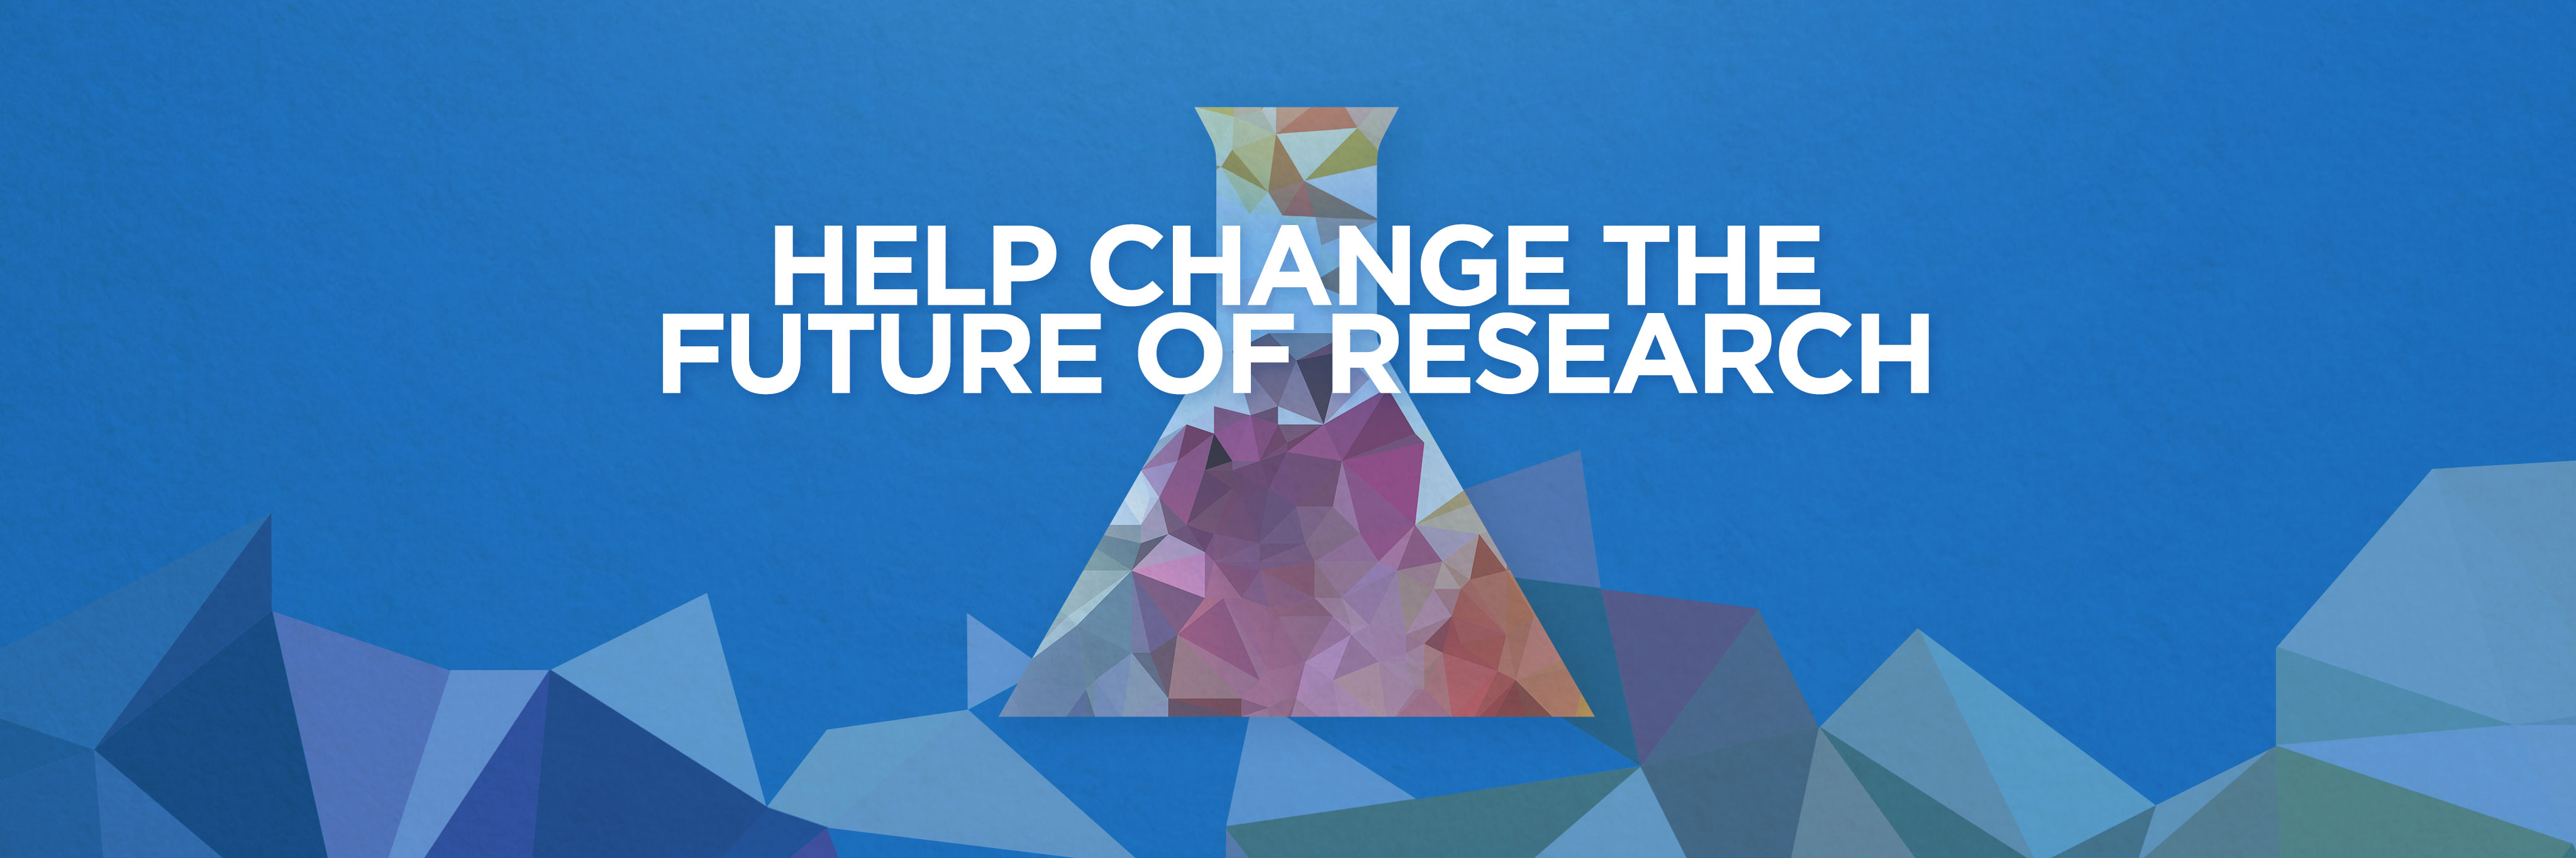 Help Change the Future of Research